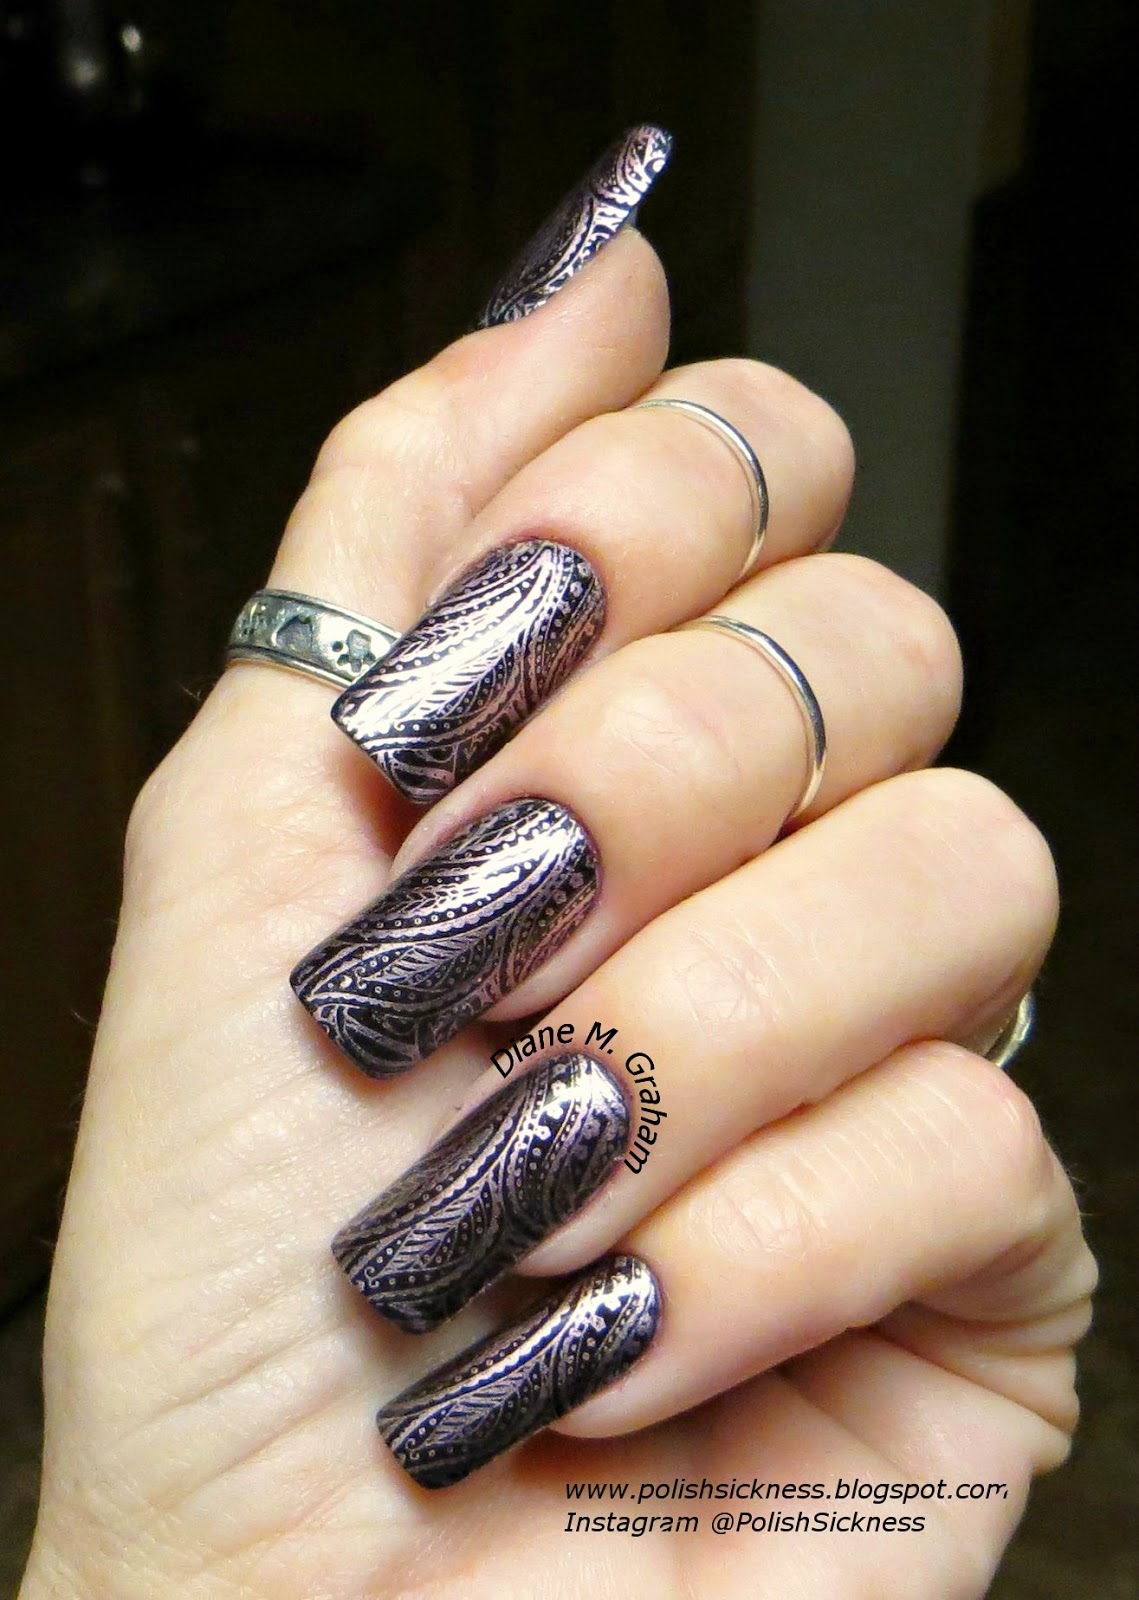 OPI Lincoln Park After Dark, China Glaze Admire, Ali Express AP-10 stamp